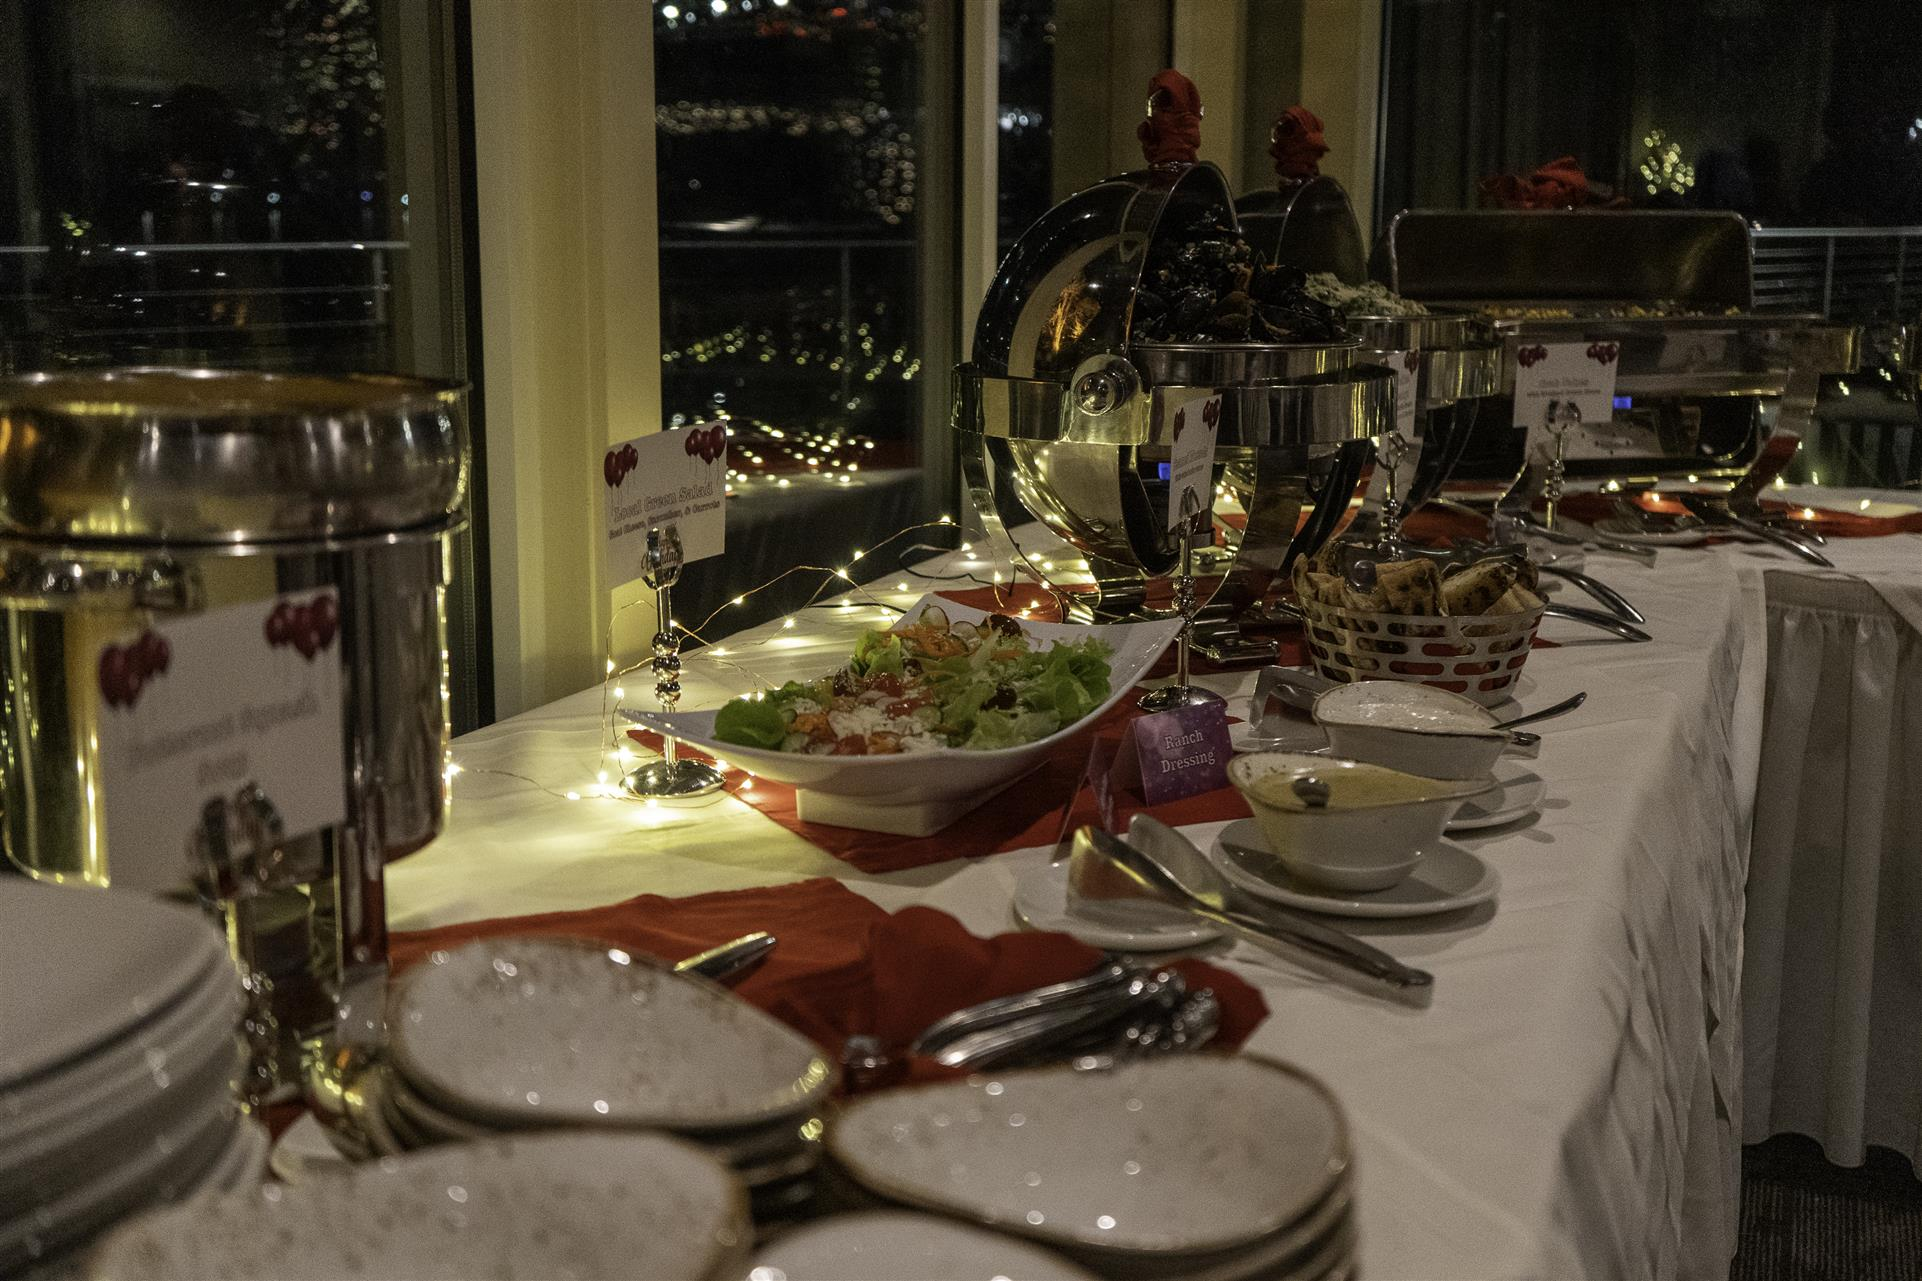 catering table with food trays